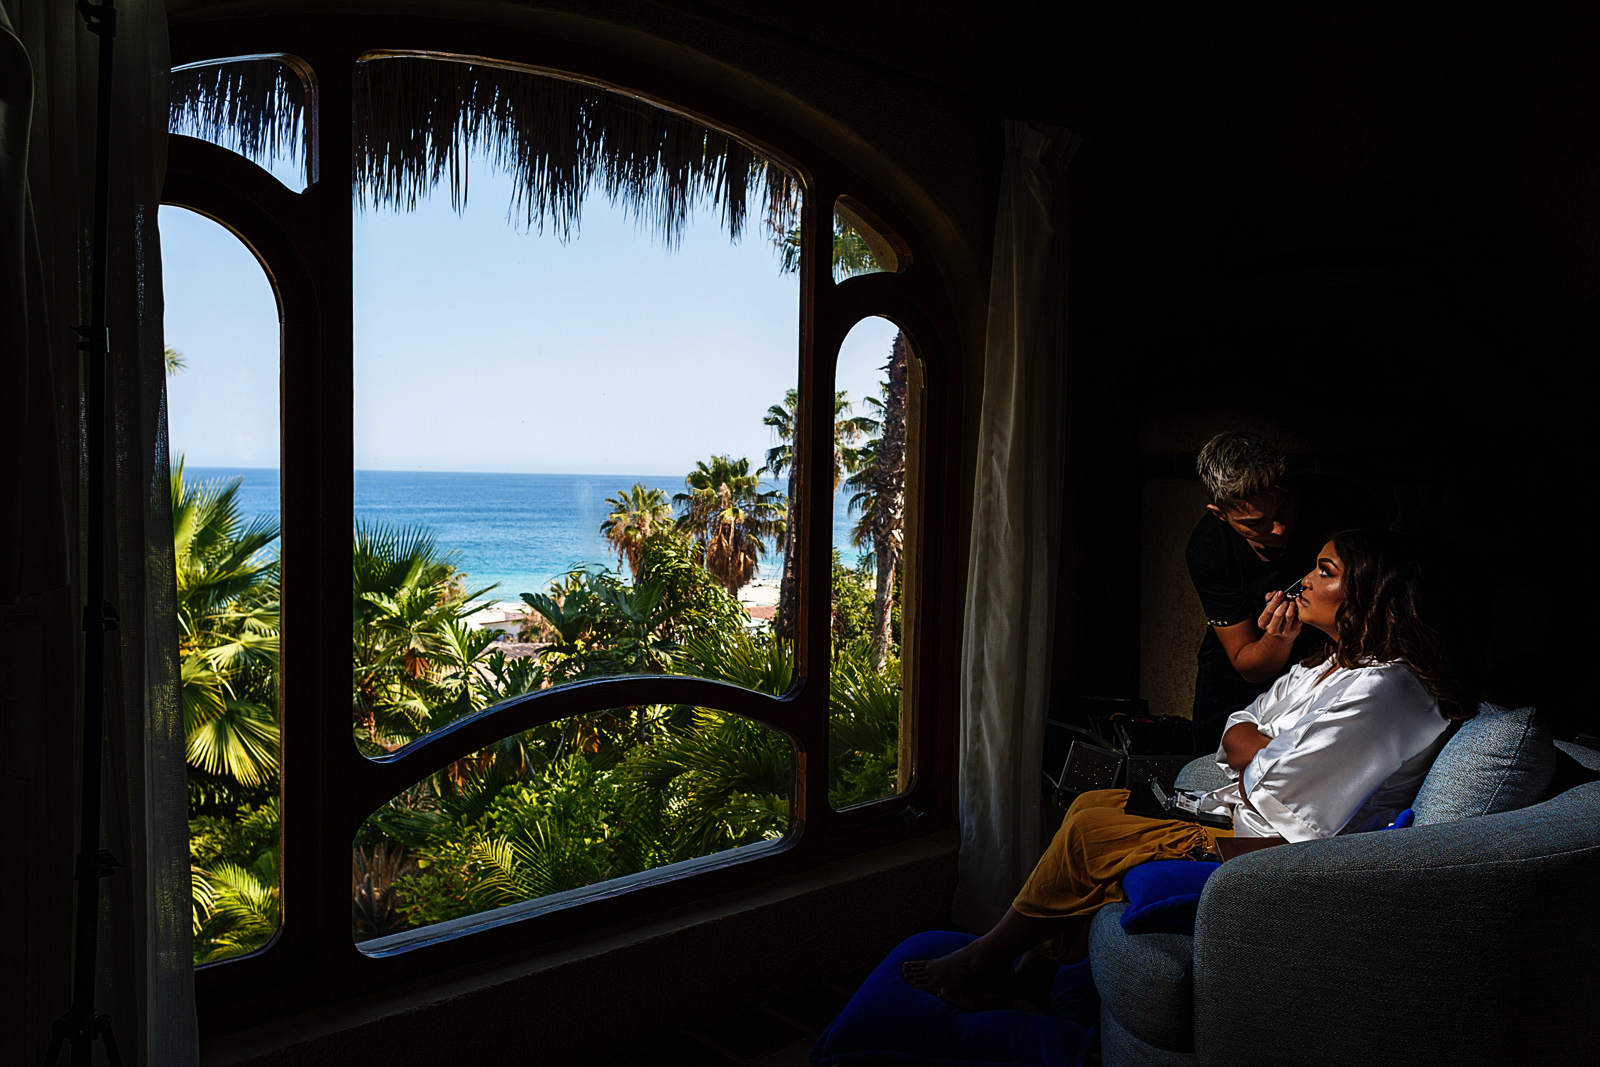 Bride during her make-up is getting applied in front of a window with a great view of the ocean at Villa Las Rocas in Cabo San Lucas